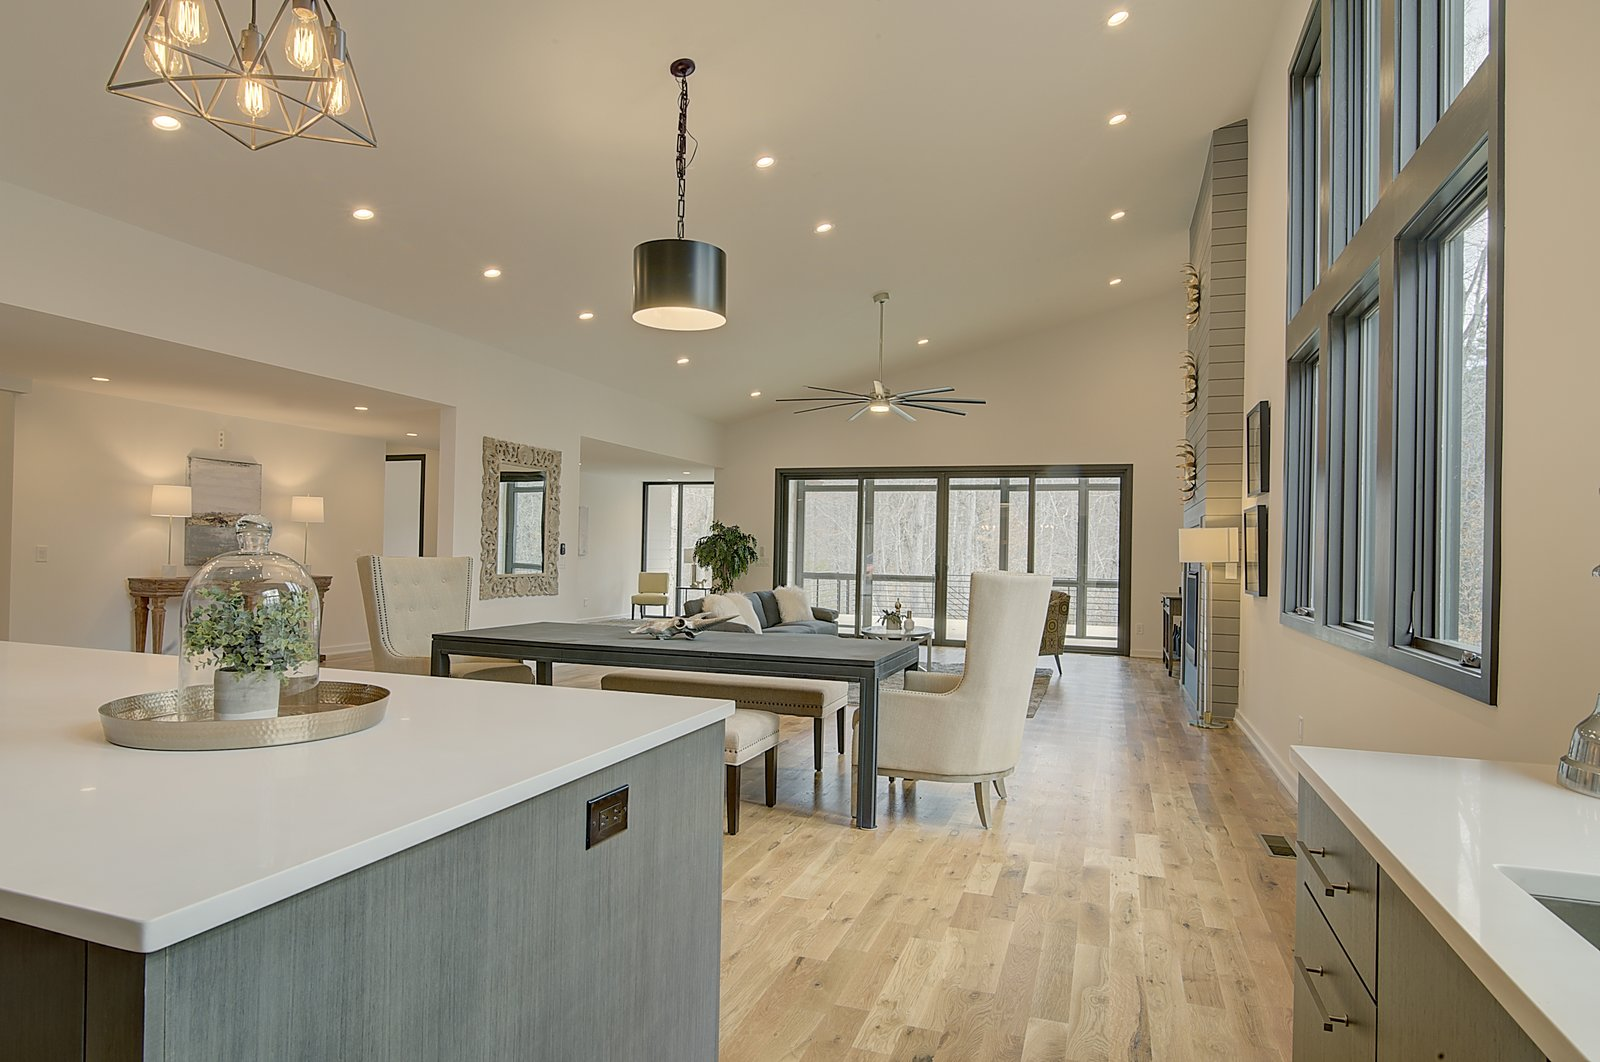 Dining Room, Pendant Lighting, Light Hardwood Floor, Recessed Lighting, Table, Bench, and Chair Kitchen - Looking toward Living Area  House 23 by Zipper Architecture